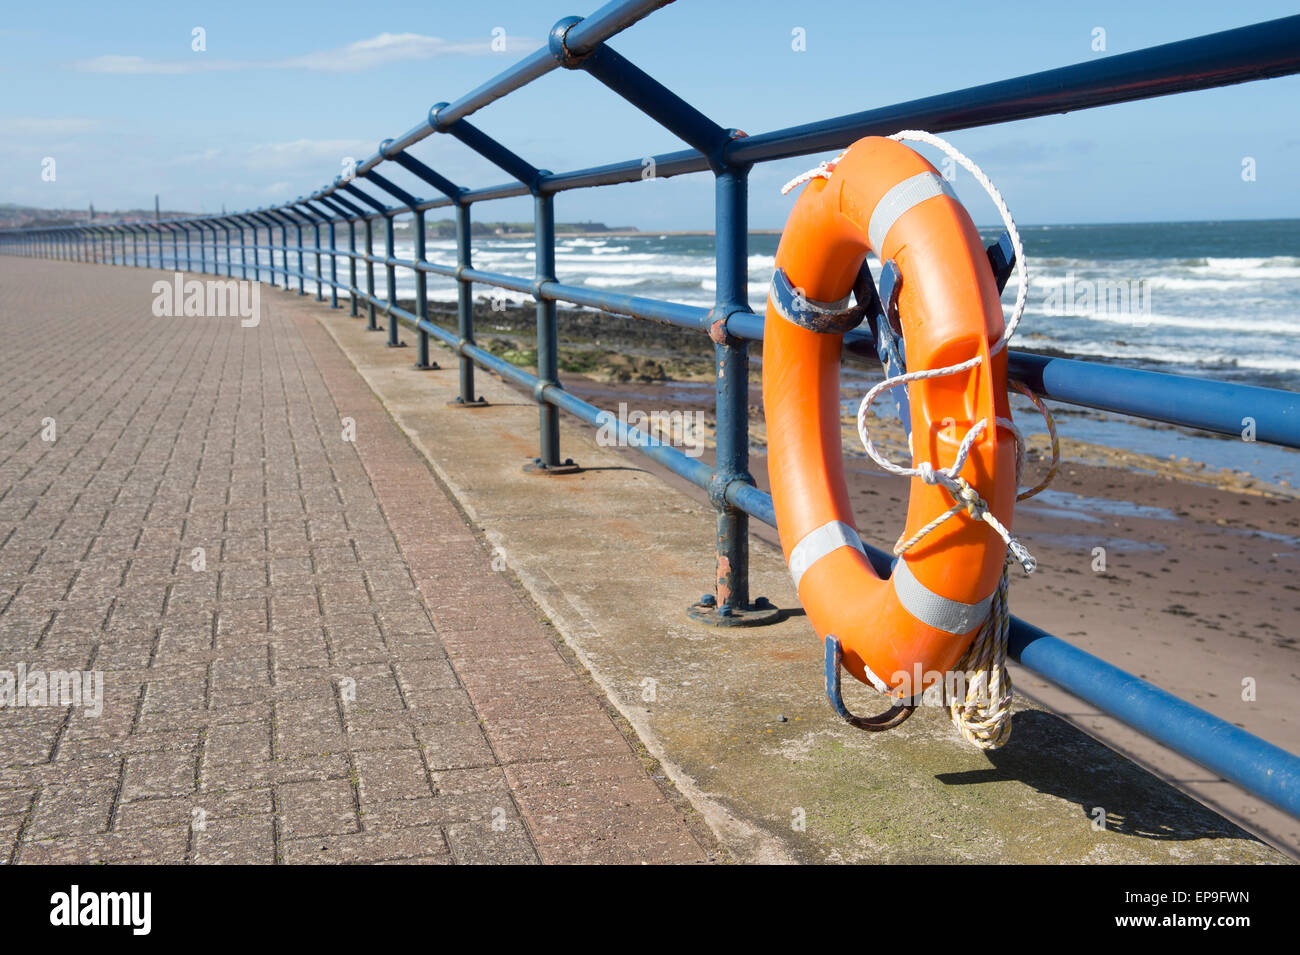 Lifebelt on the promenade railing at Spittal Beach, Berwick upon Tweed, Northumberland, England - Stock Image